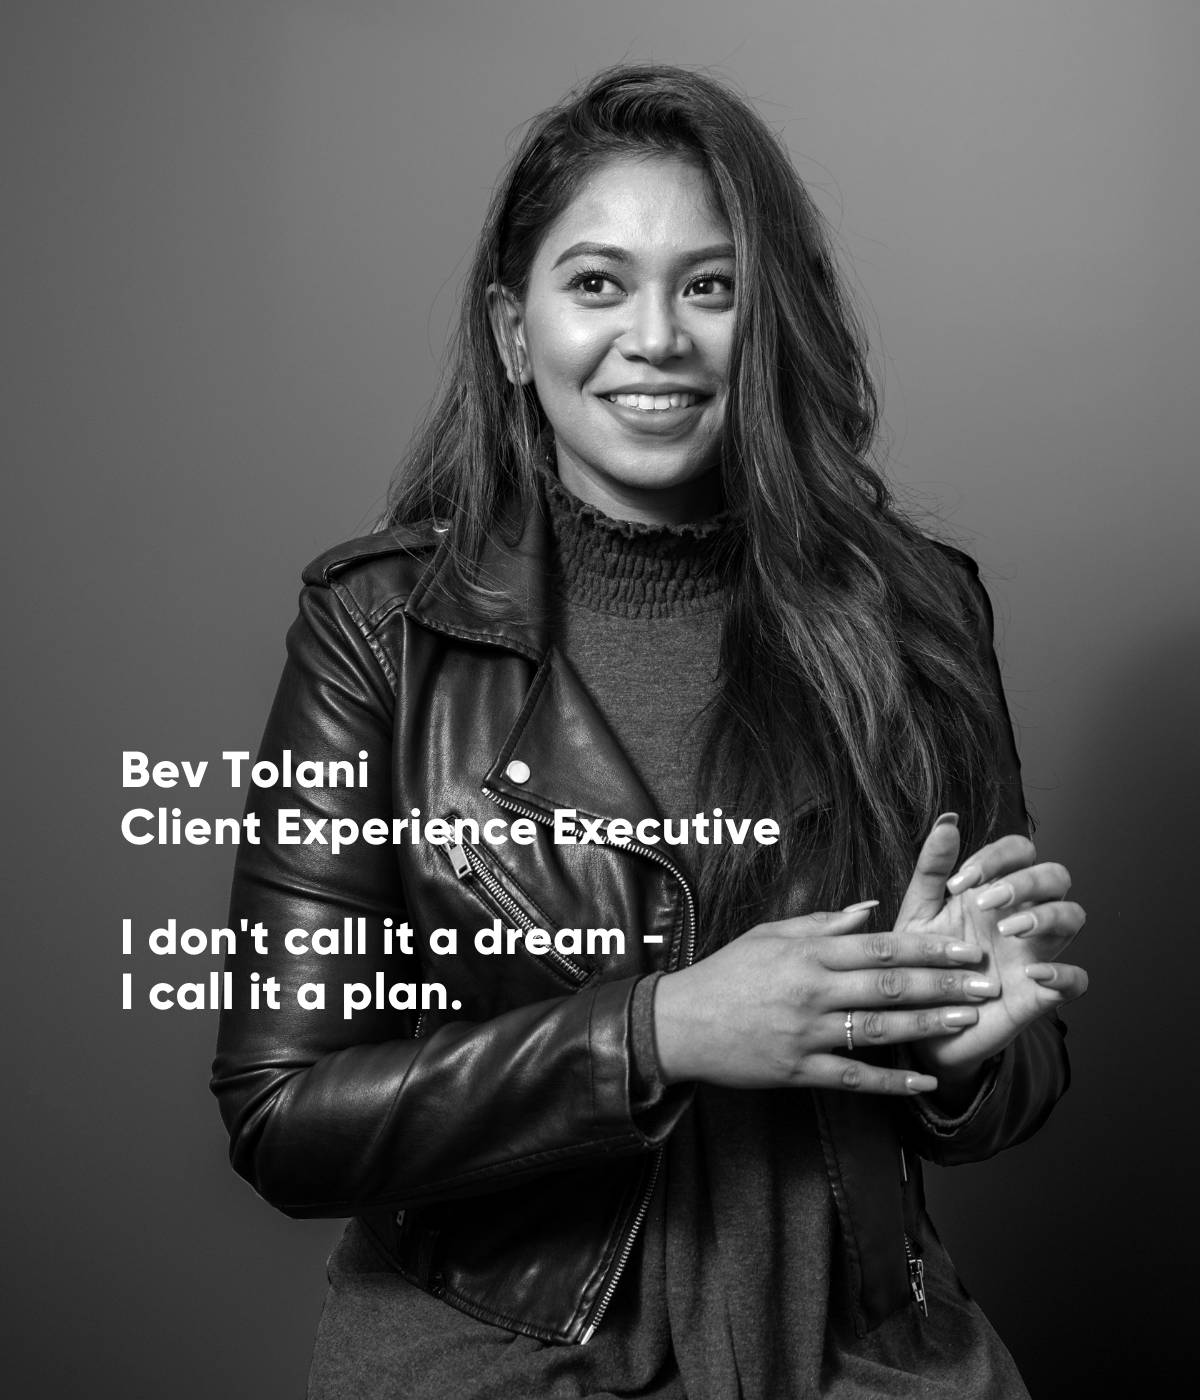 Bev Tolani, Client Experience Executive